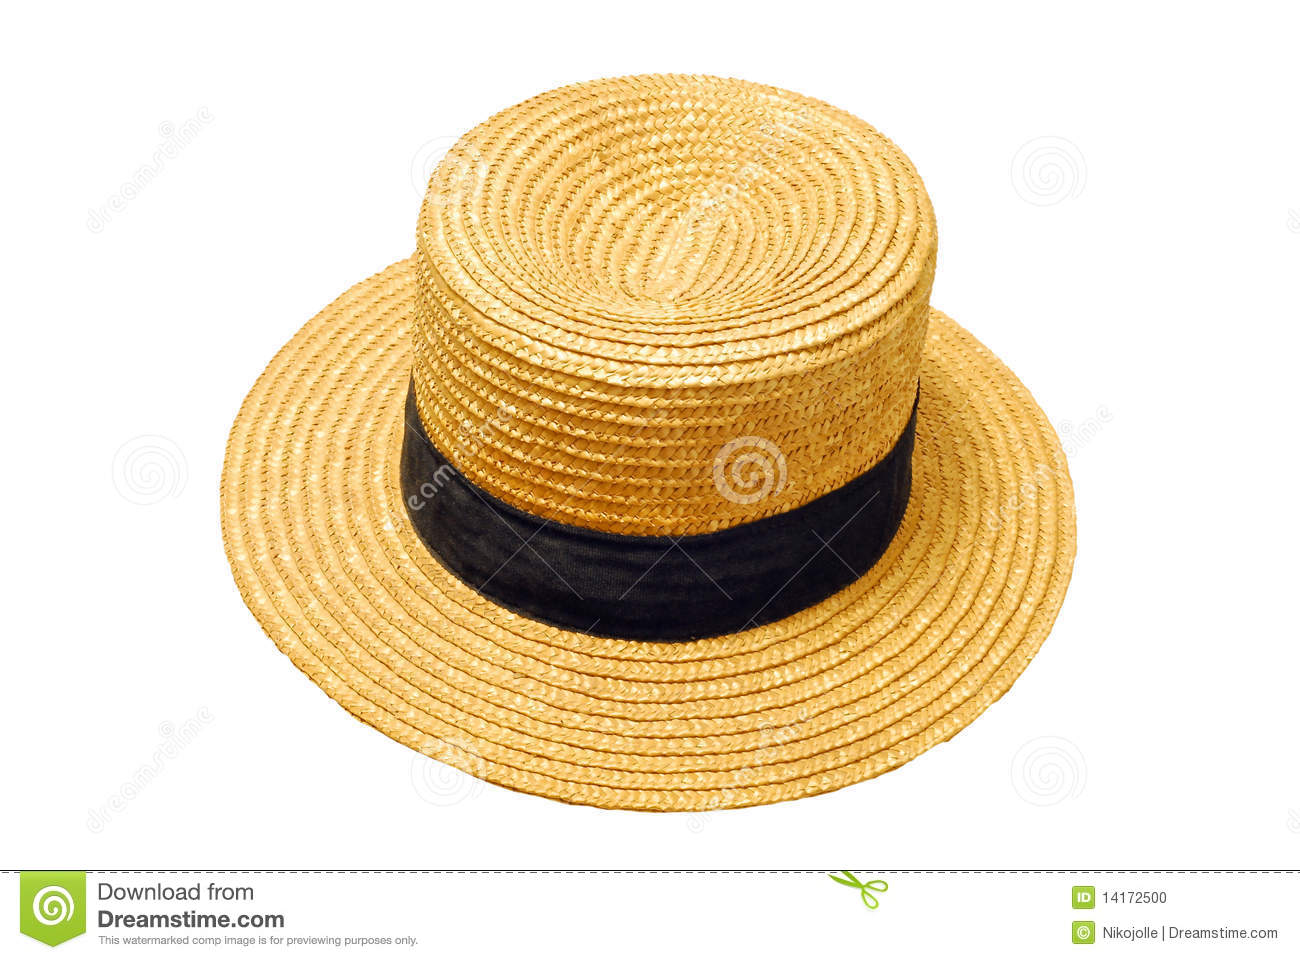 how to say hat in french